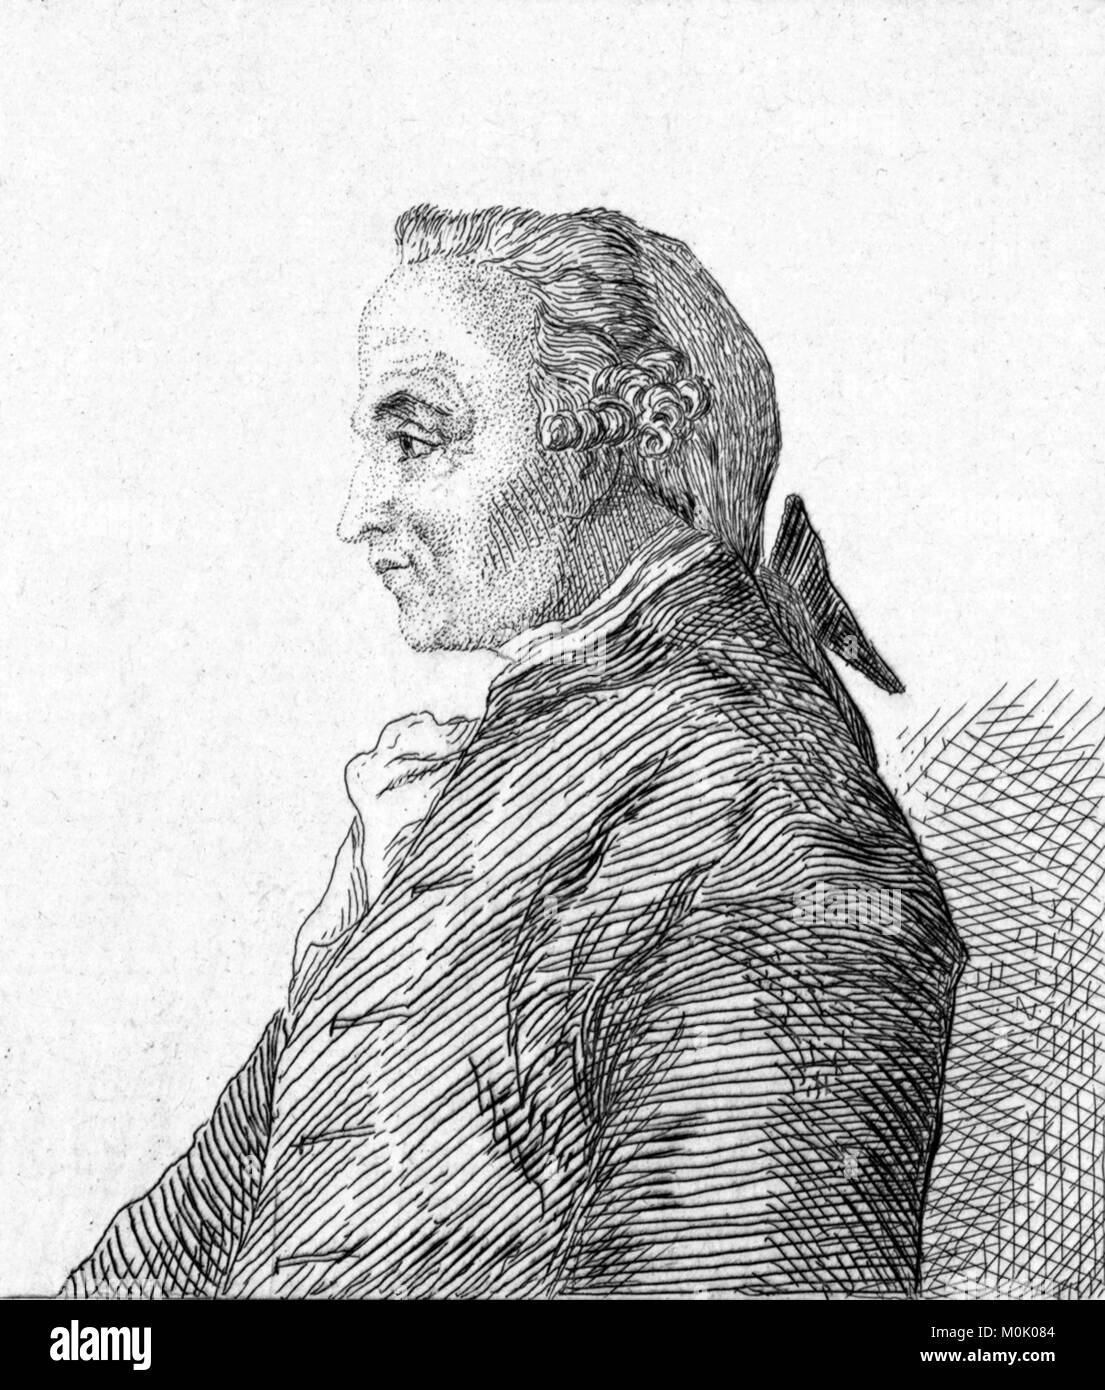 Immanuel Kant (1724-1804). Etching of the German philosopher by Félix Bracquemond, 1852. - Stock Image